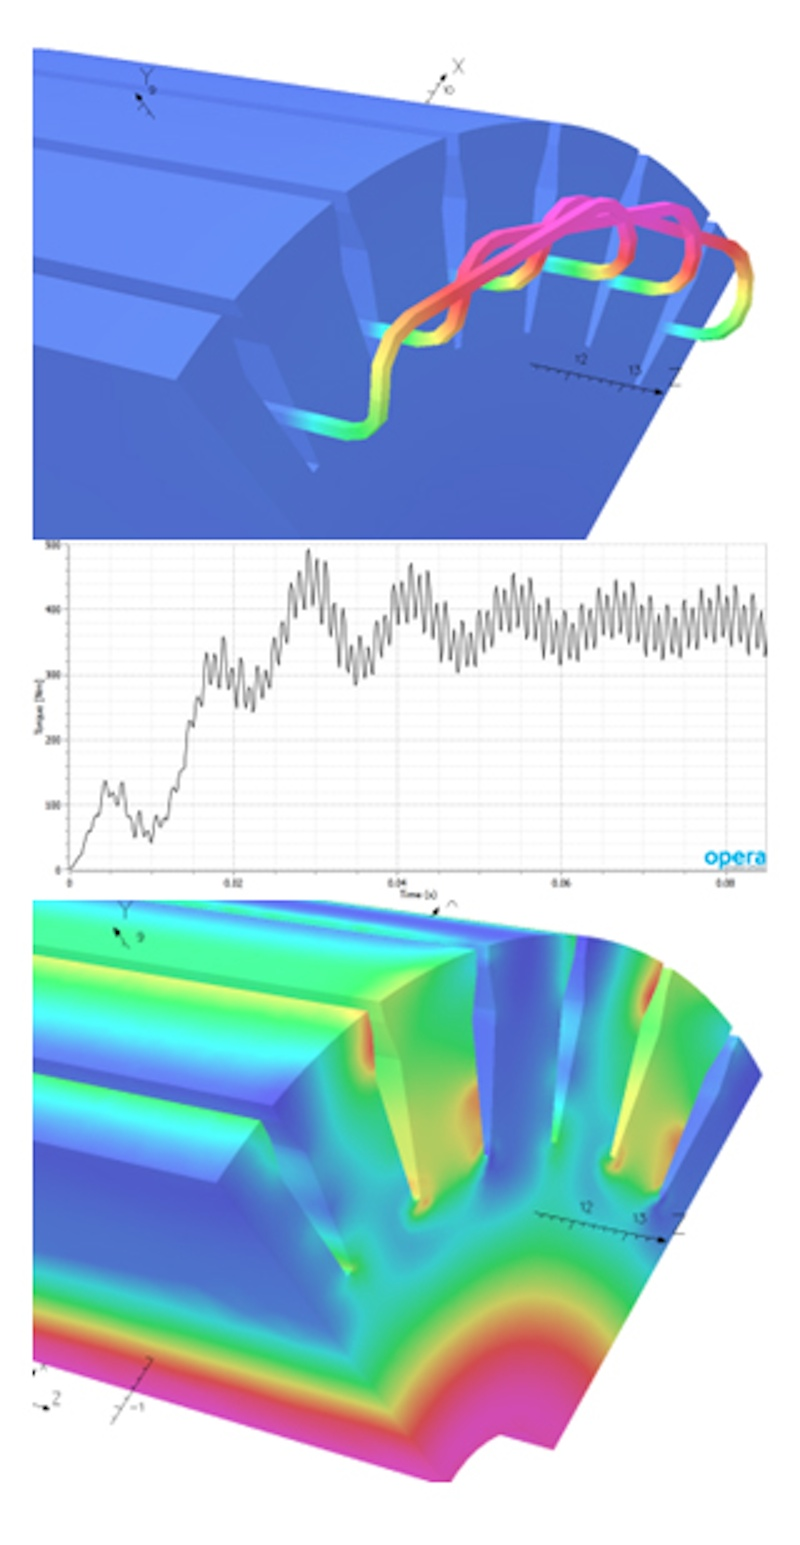 Multiphysics software speeds system optimization